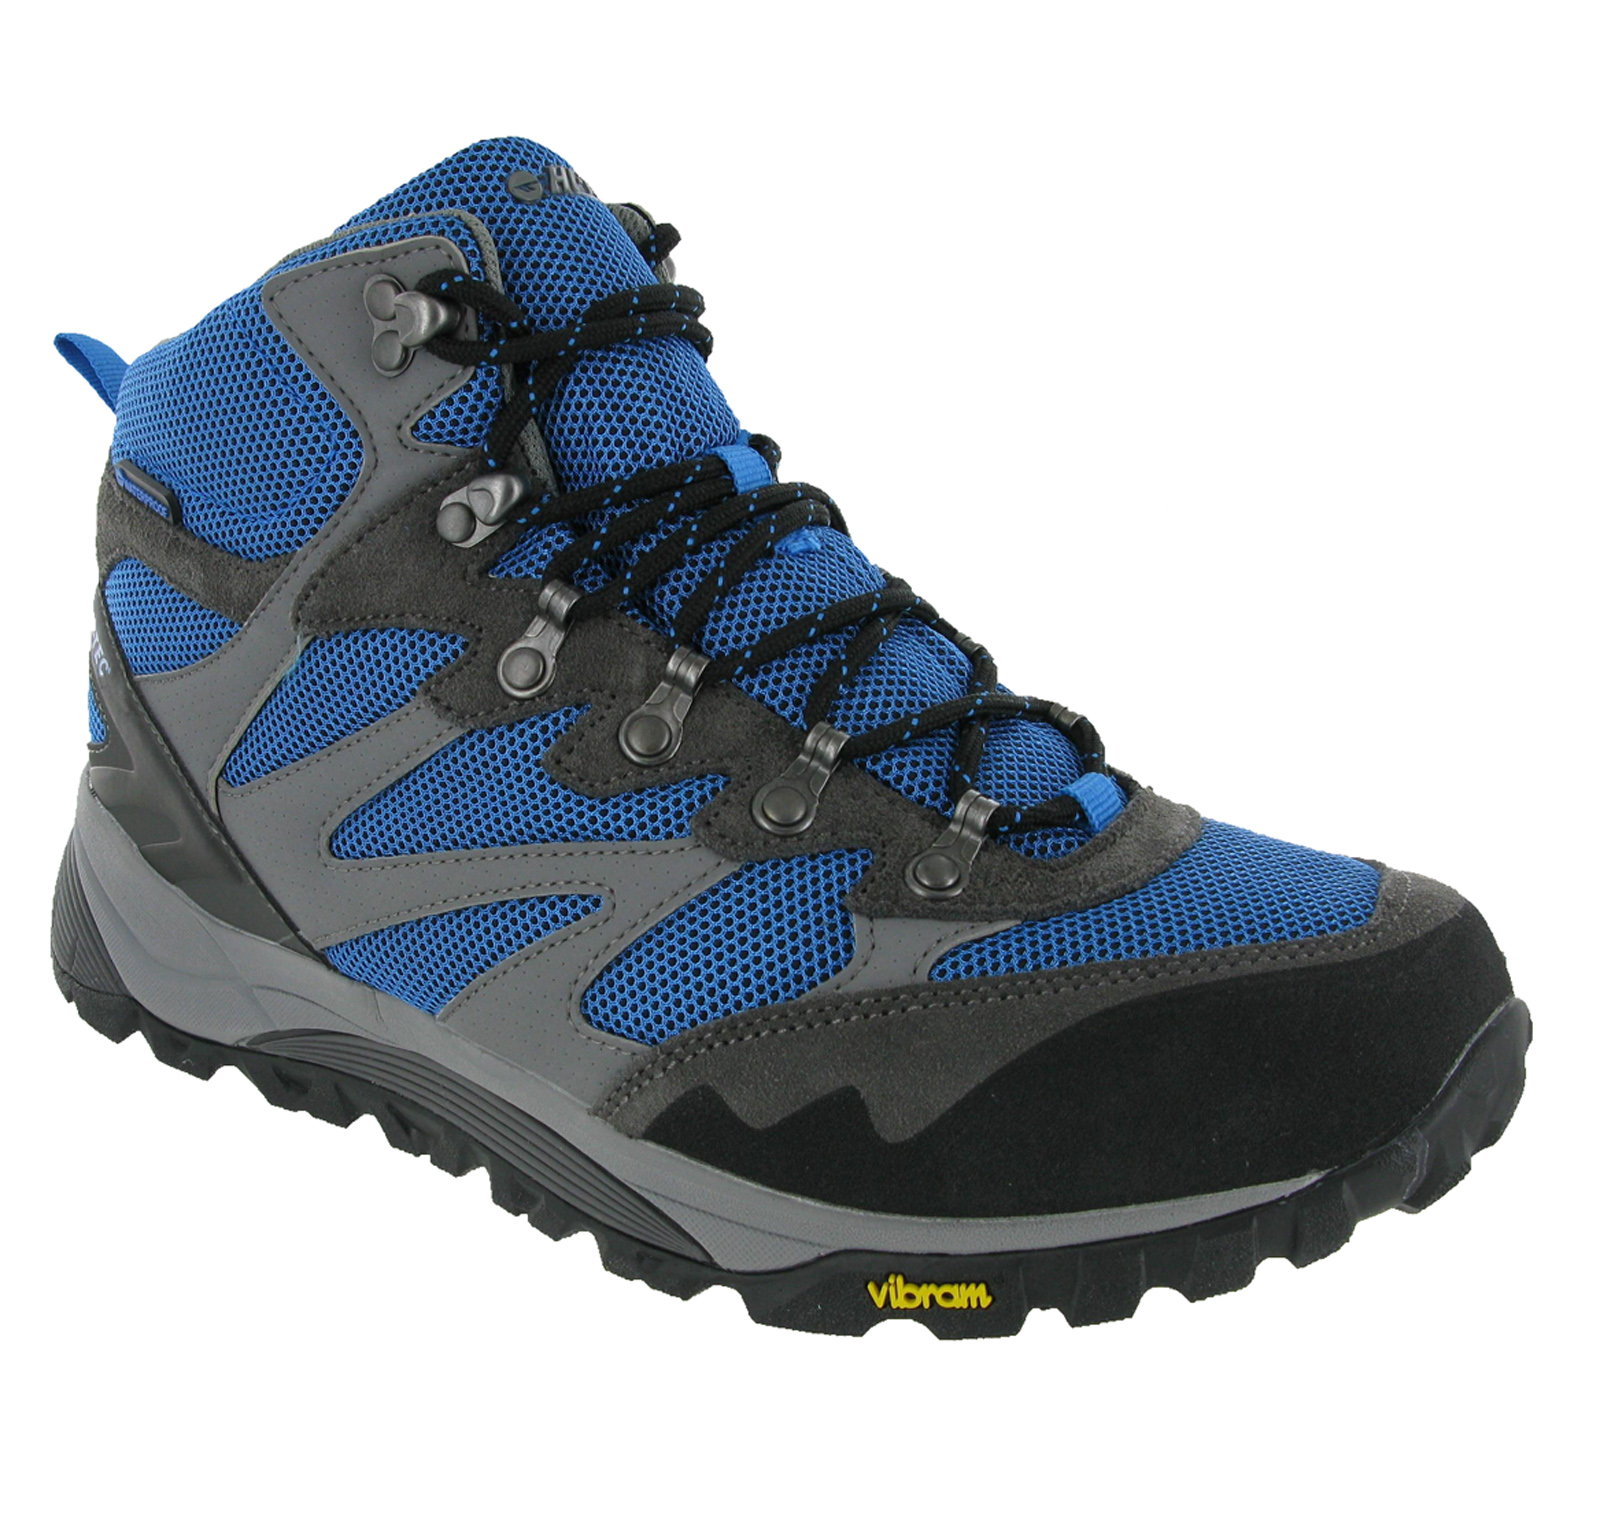 Mens Size  Hi Tec Waterproof Walking Shoes